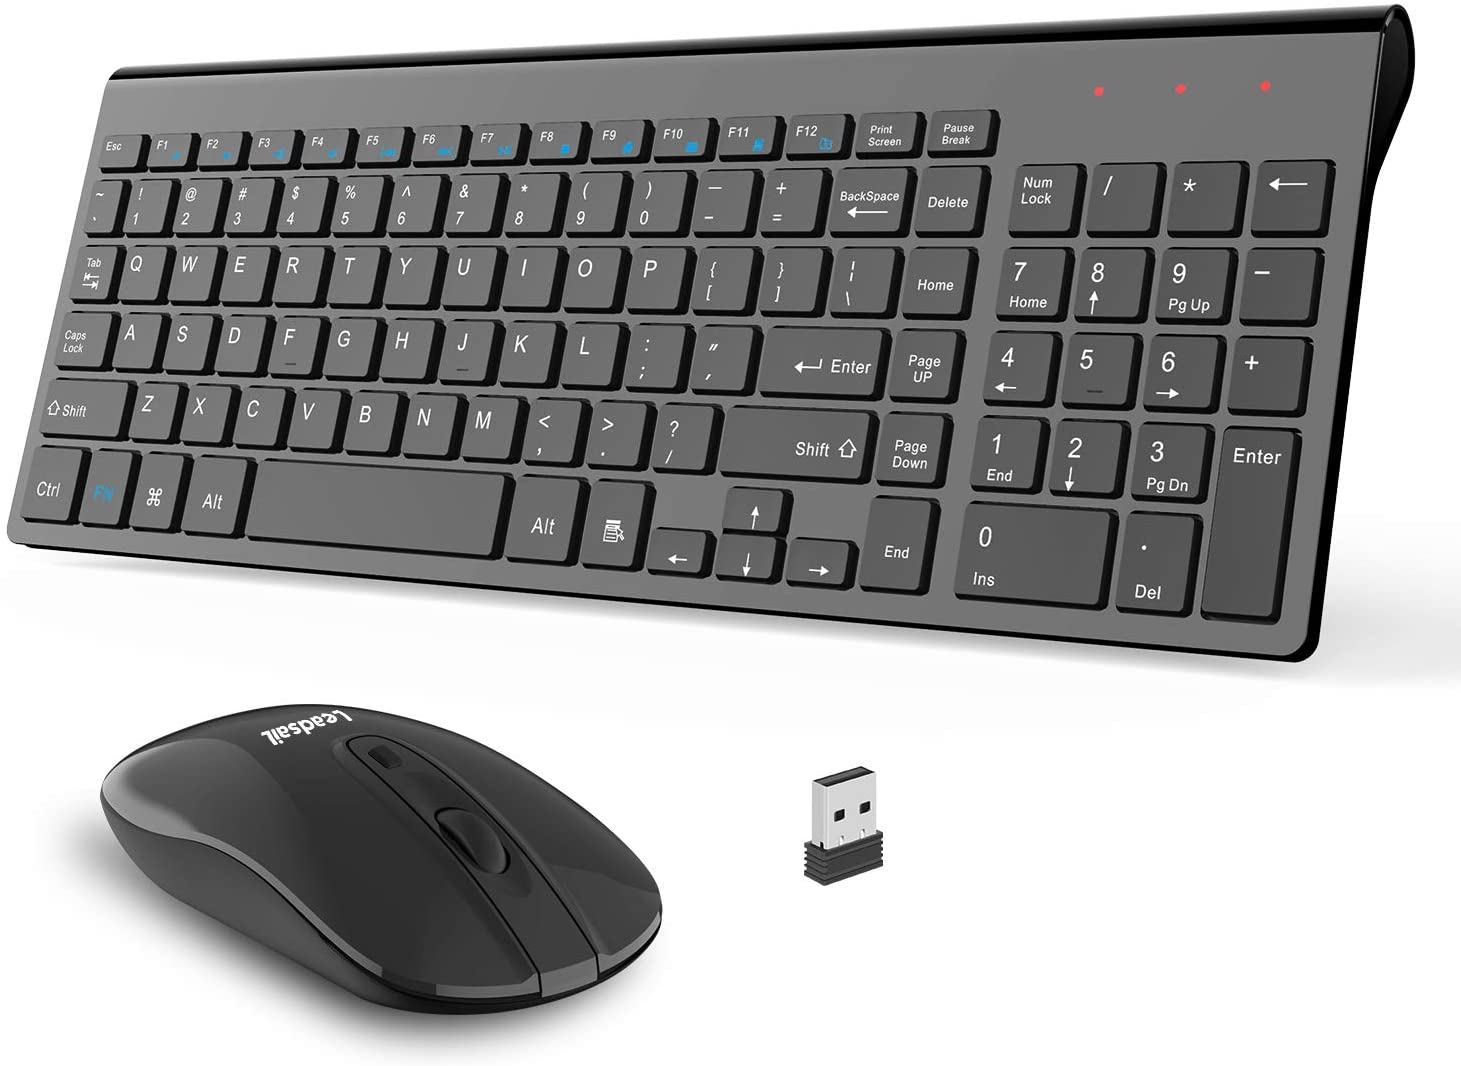 Wireless Keyboard and Mouse Combo, LeadsaiL Compact Quiet Full Size Wireless Keyboard and Mouse Set 2.4G Ultra-Thin Sleek Design for Windows, Computer, Desktop, PC, Notebook, Laptop (Light Black)